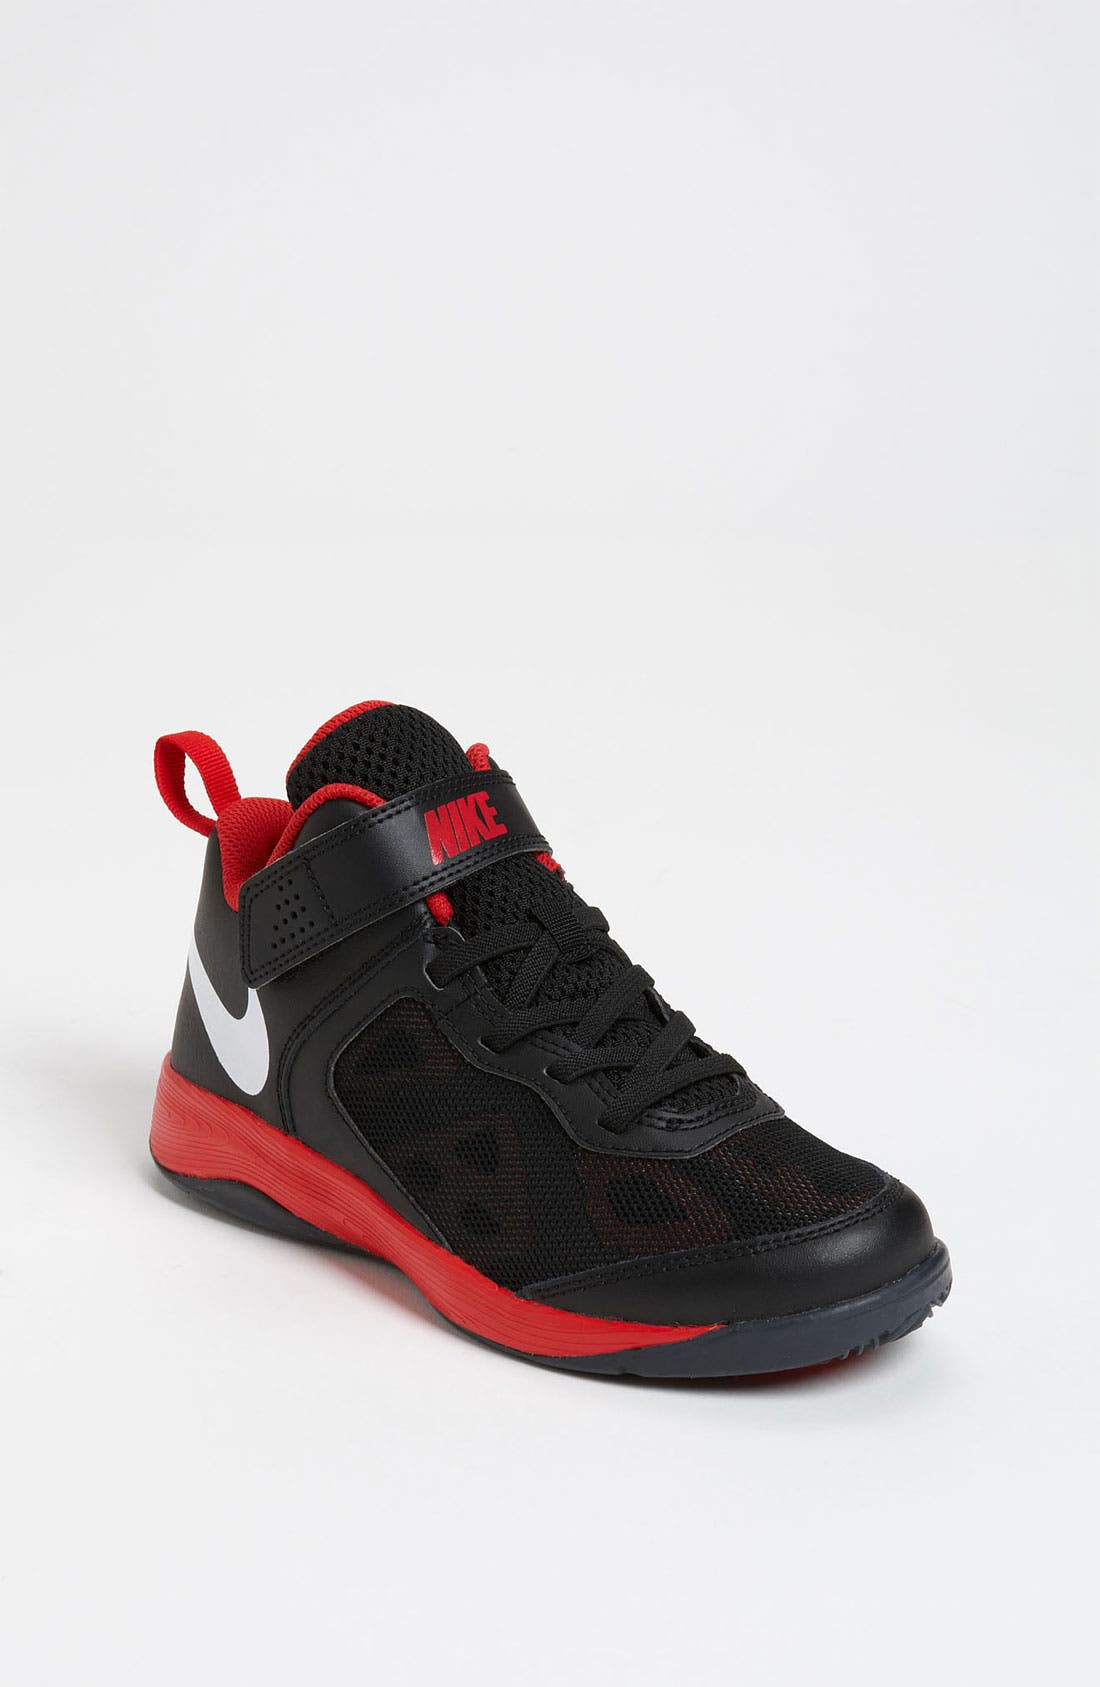 Main Image - Nike 'Fusion' Basketball Shoe (Toddler & Little Kid)